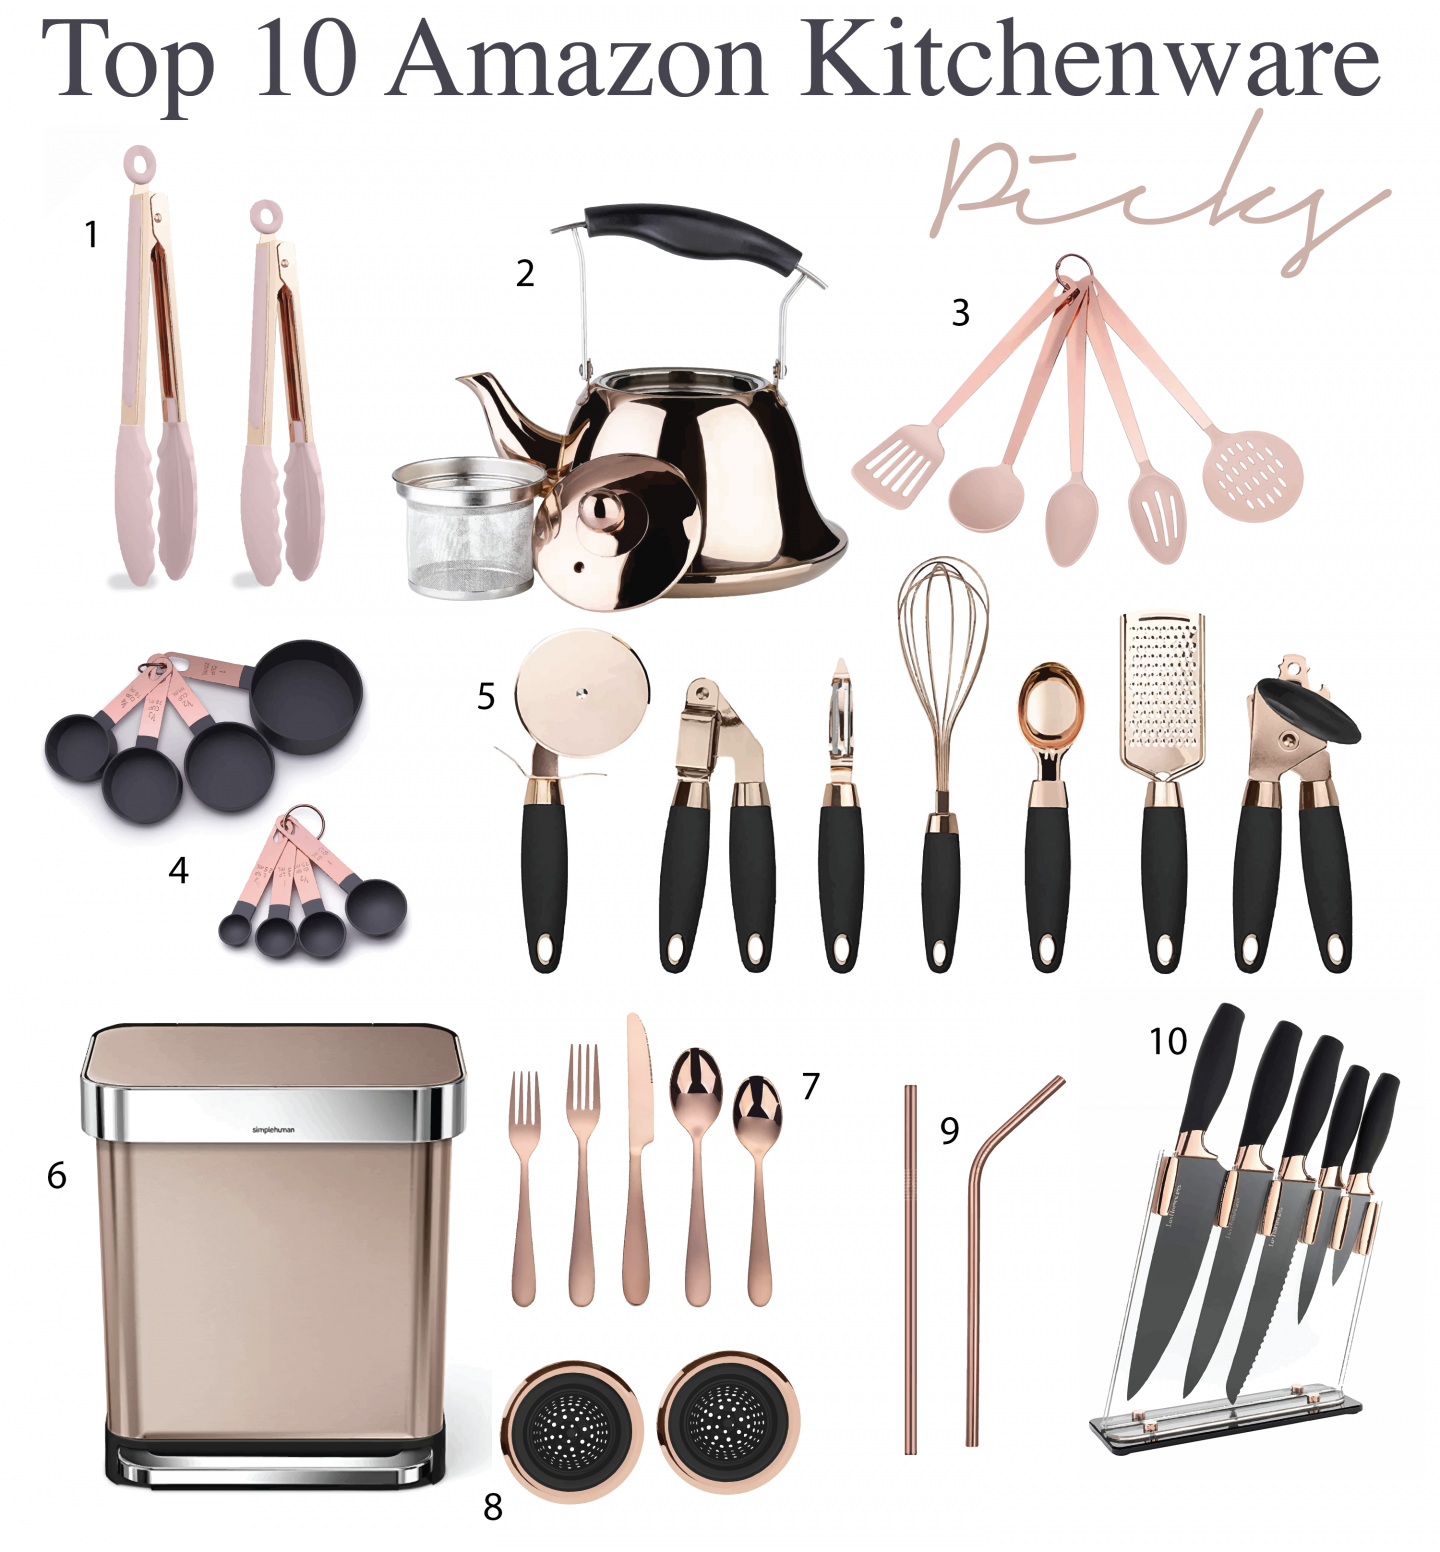 Favorite Rose-Gold Kitchenware From Amazon - Beauty Detour